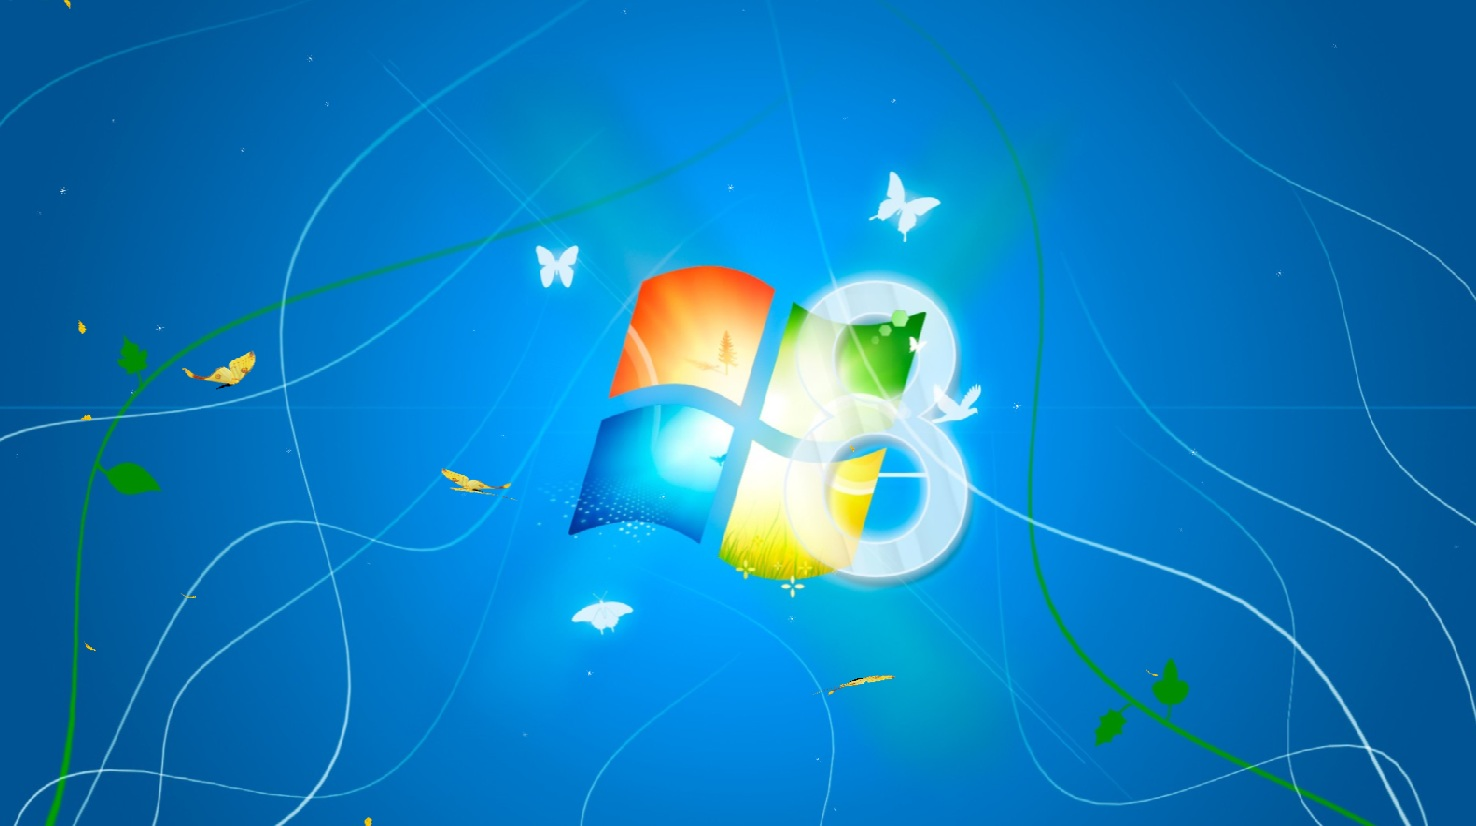 Windows Animated Wallpaper